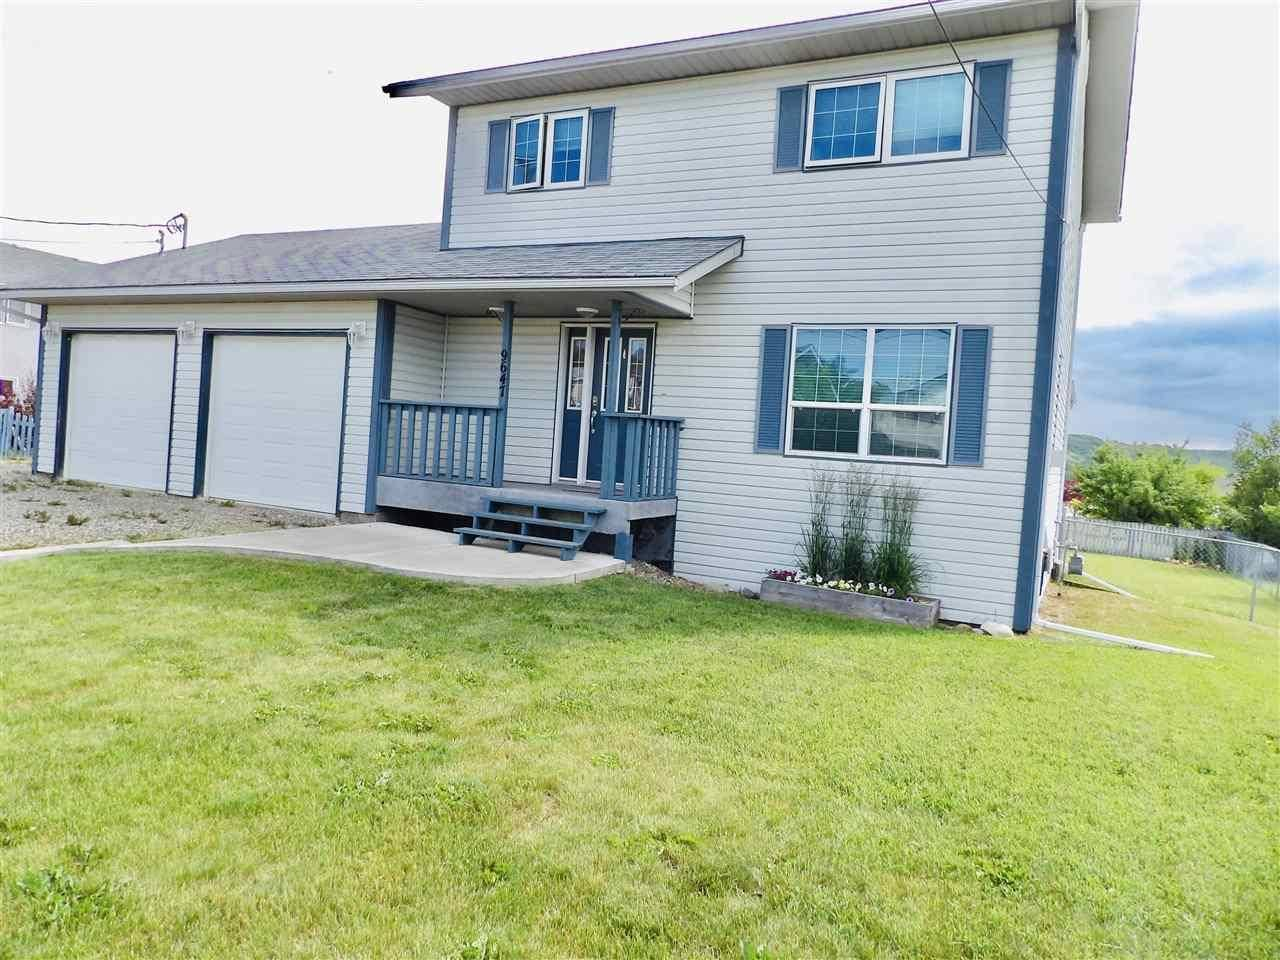 House for sale at 9647 Spruce St N Taylor British Columbia - MLS: R2370005